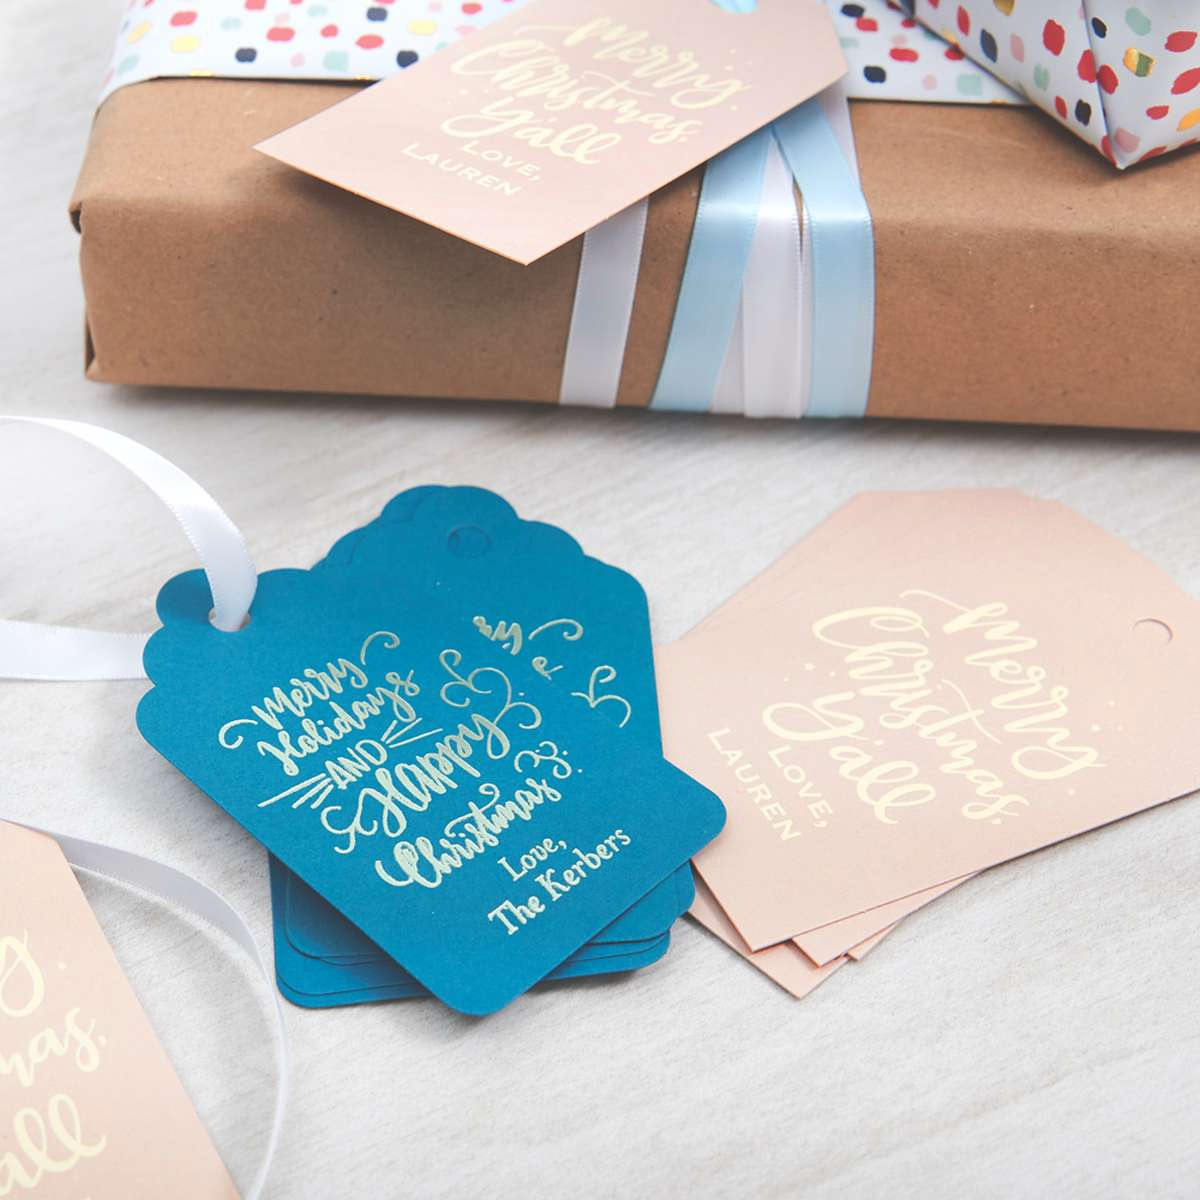 custom designed gift tags on Christmas gifts